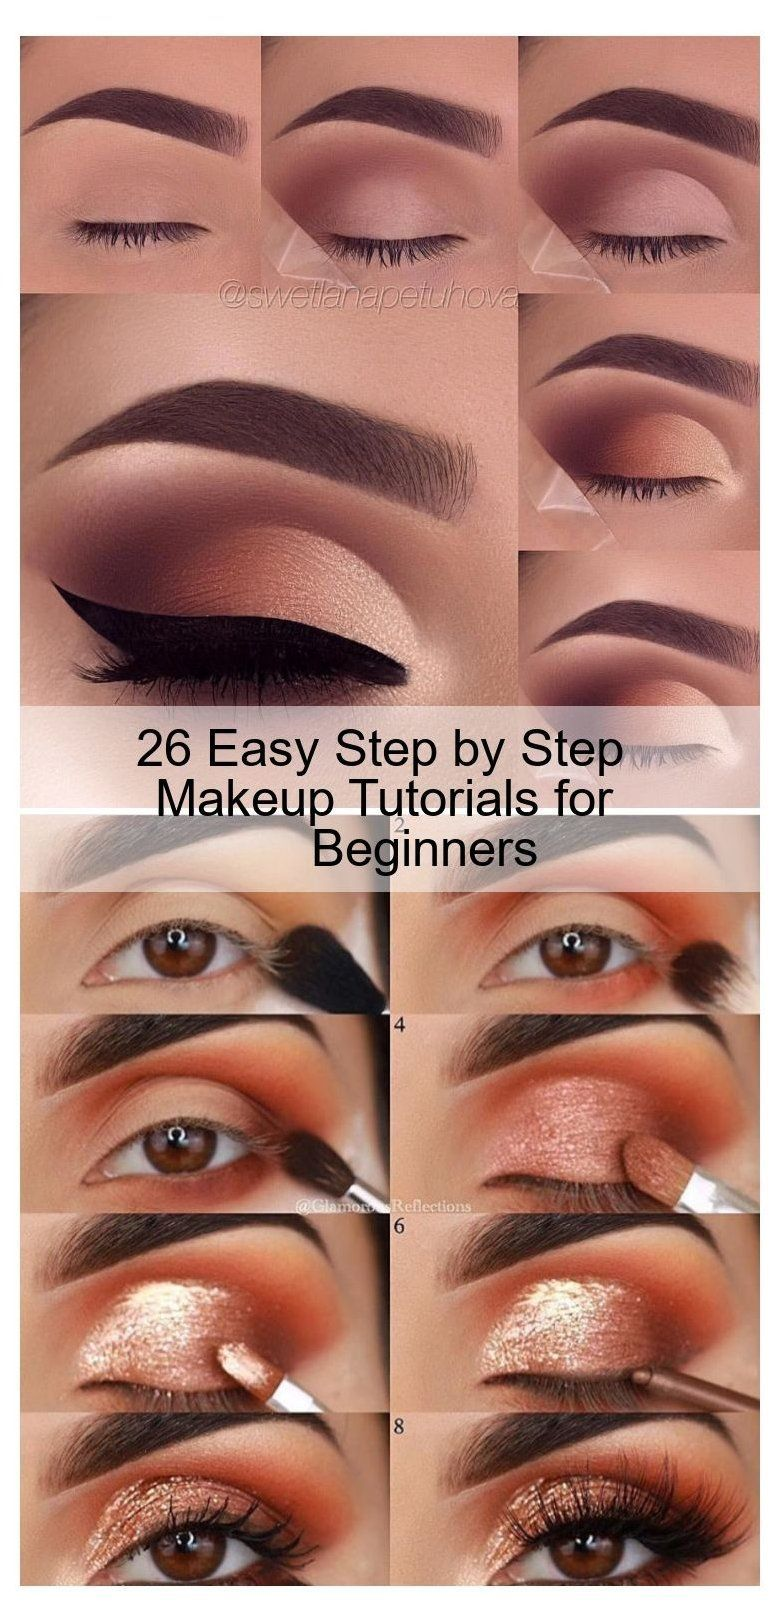 26 Easy Step By Step Makeup Tutorials For Beginners Make Up For Beginners B In 2020 Easy Eye Makeup Tutorial Makeup For Beginners Easy Makeup Tutorial